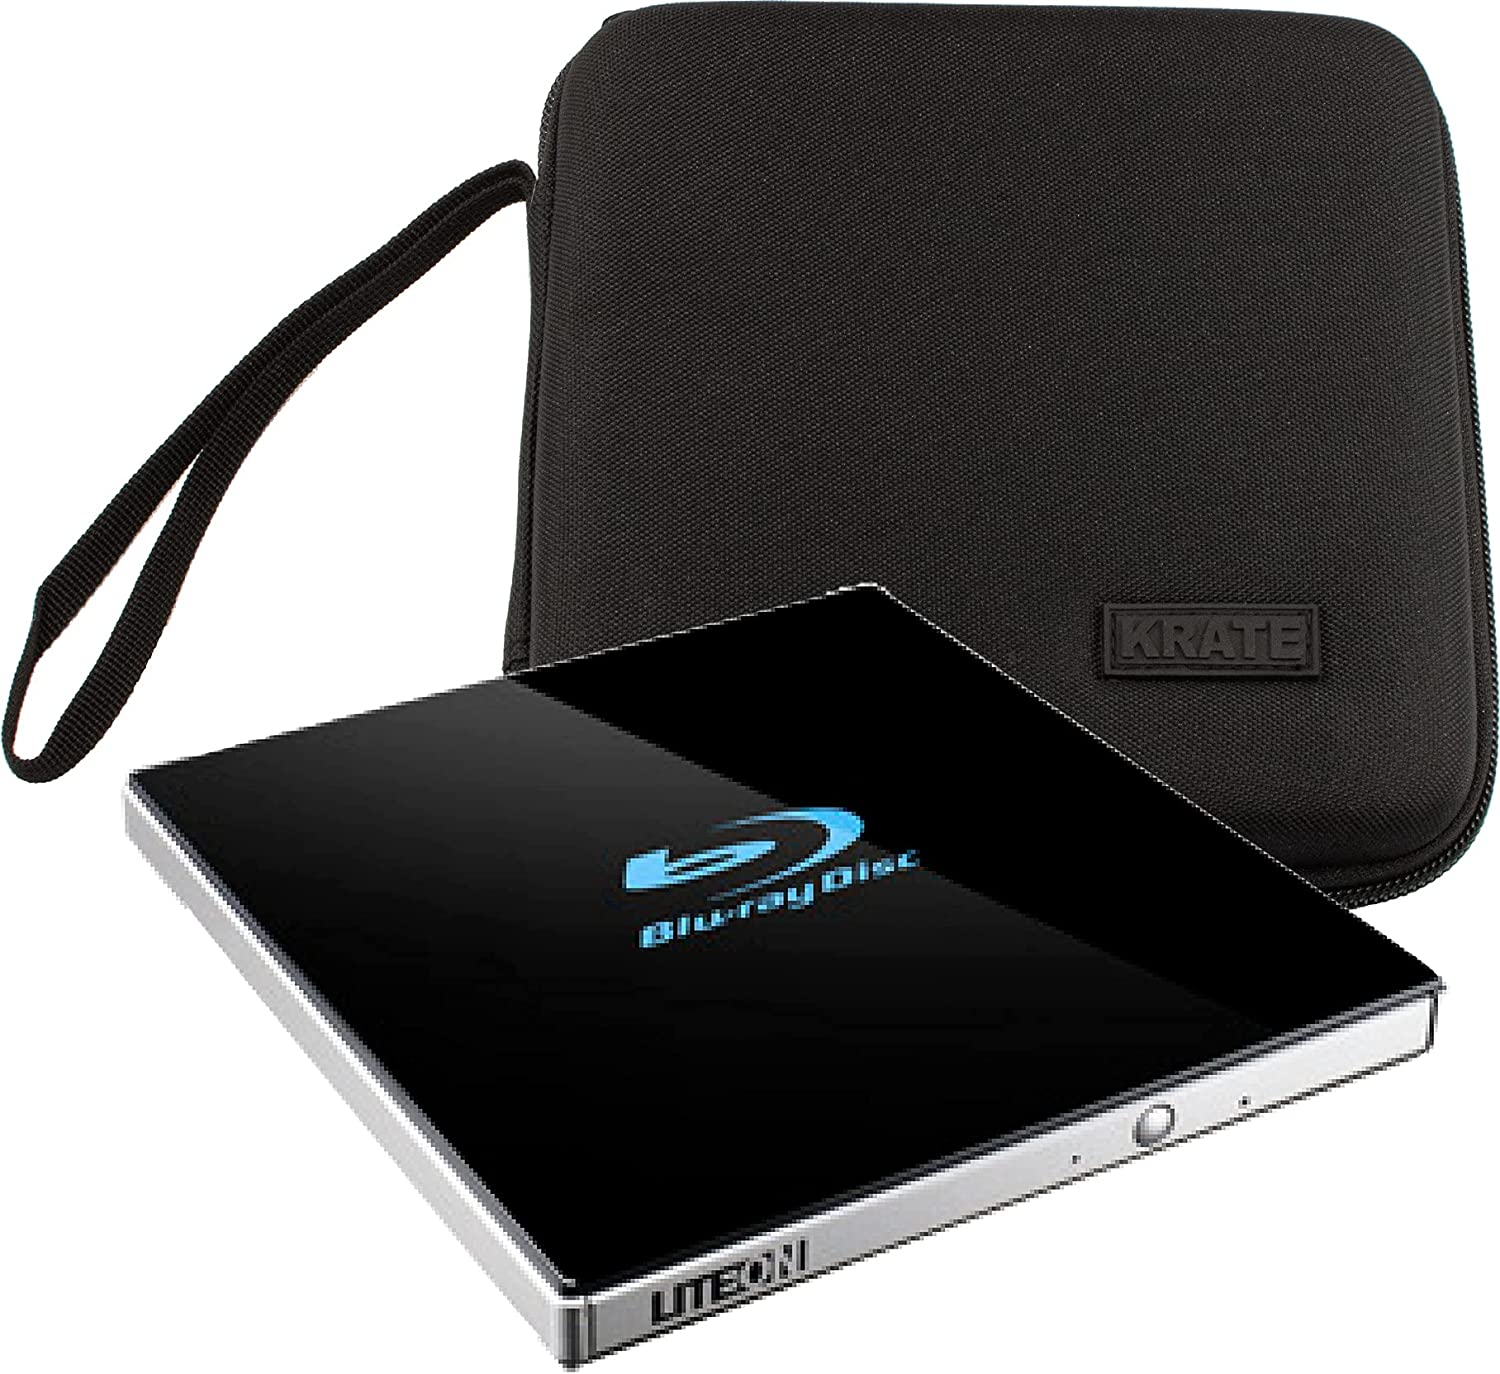 LITE-ON Portable Drive Blu-Ray Player - Today's only for Finally resale start 4K Windows